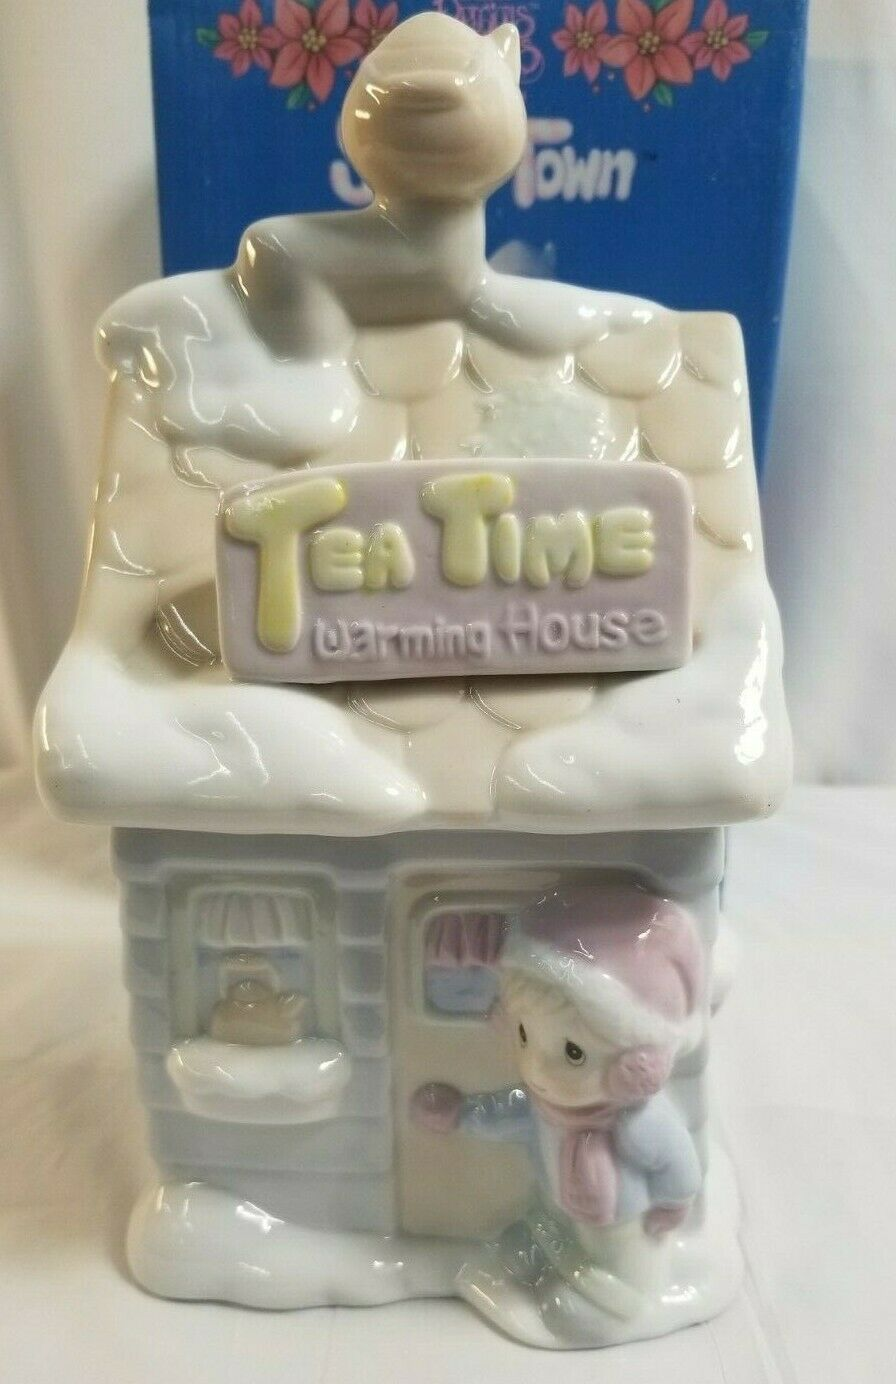 "Primary image for 1994 PRECIOUS MOMENTS Sugar Town ""Tea Time Warming House Tea Canister"" #603317"